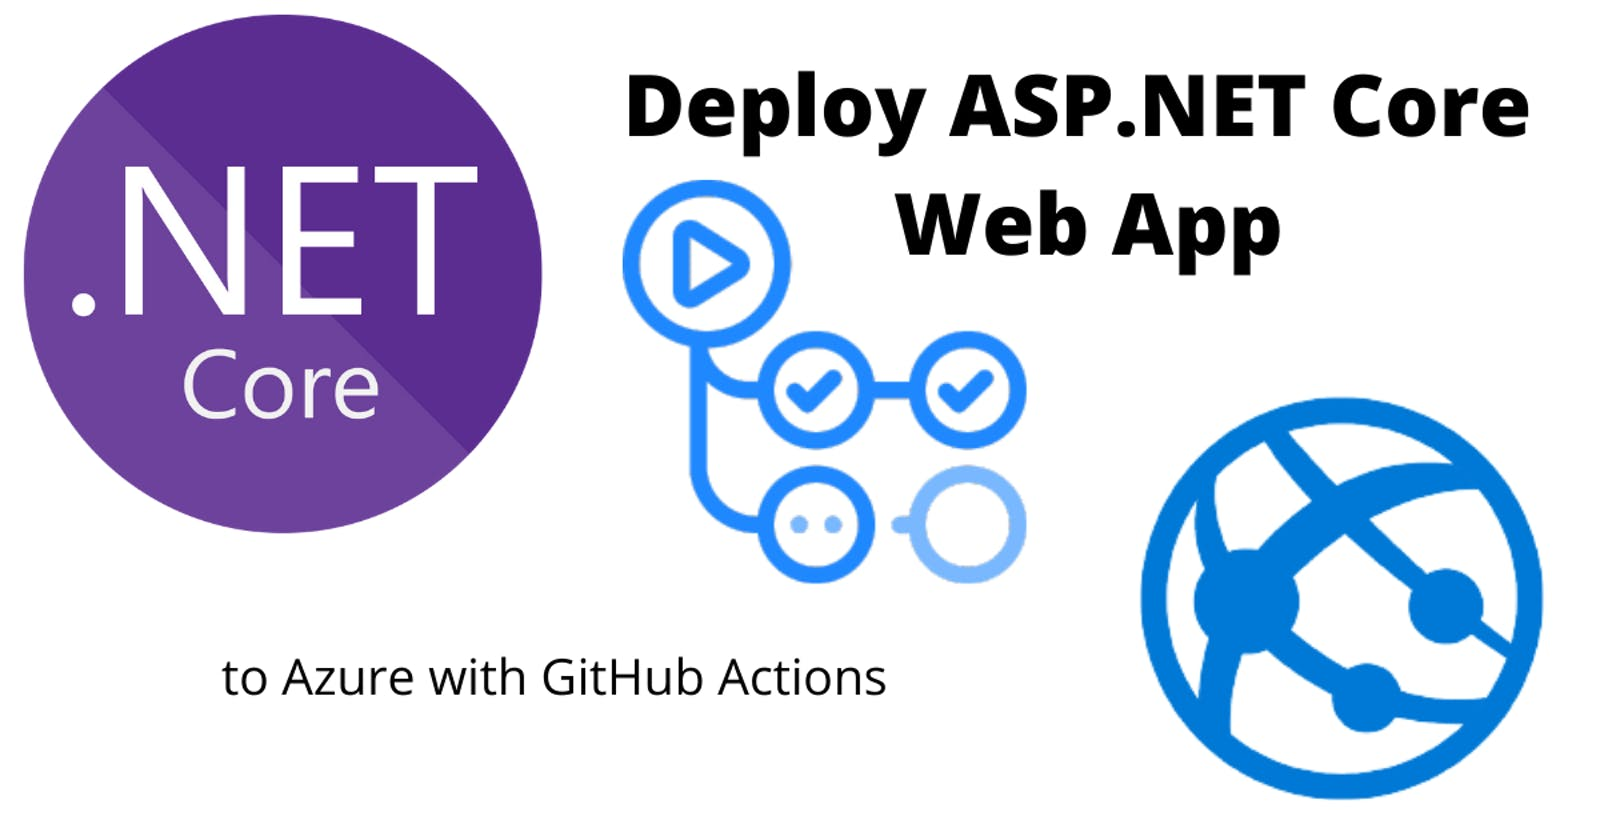 Deploy ASP.NET Core Web App to Azure with GitHub Actions